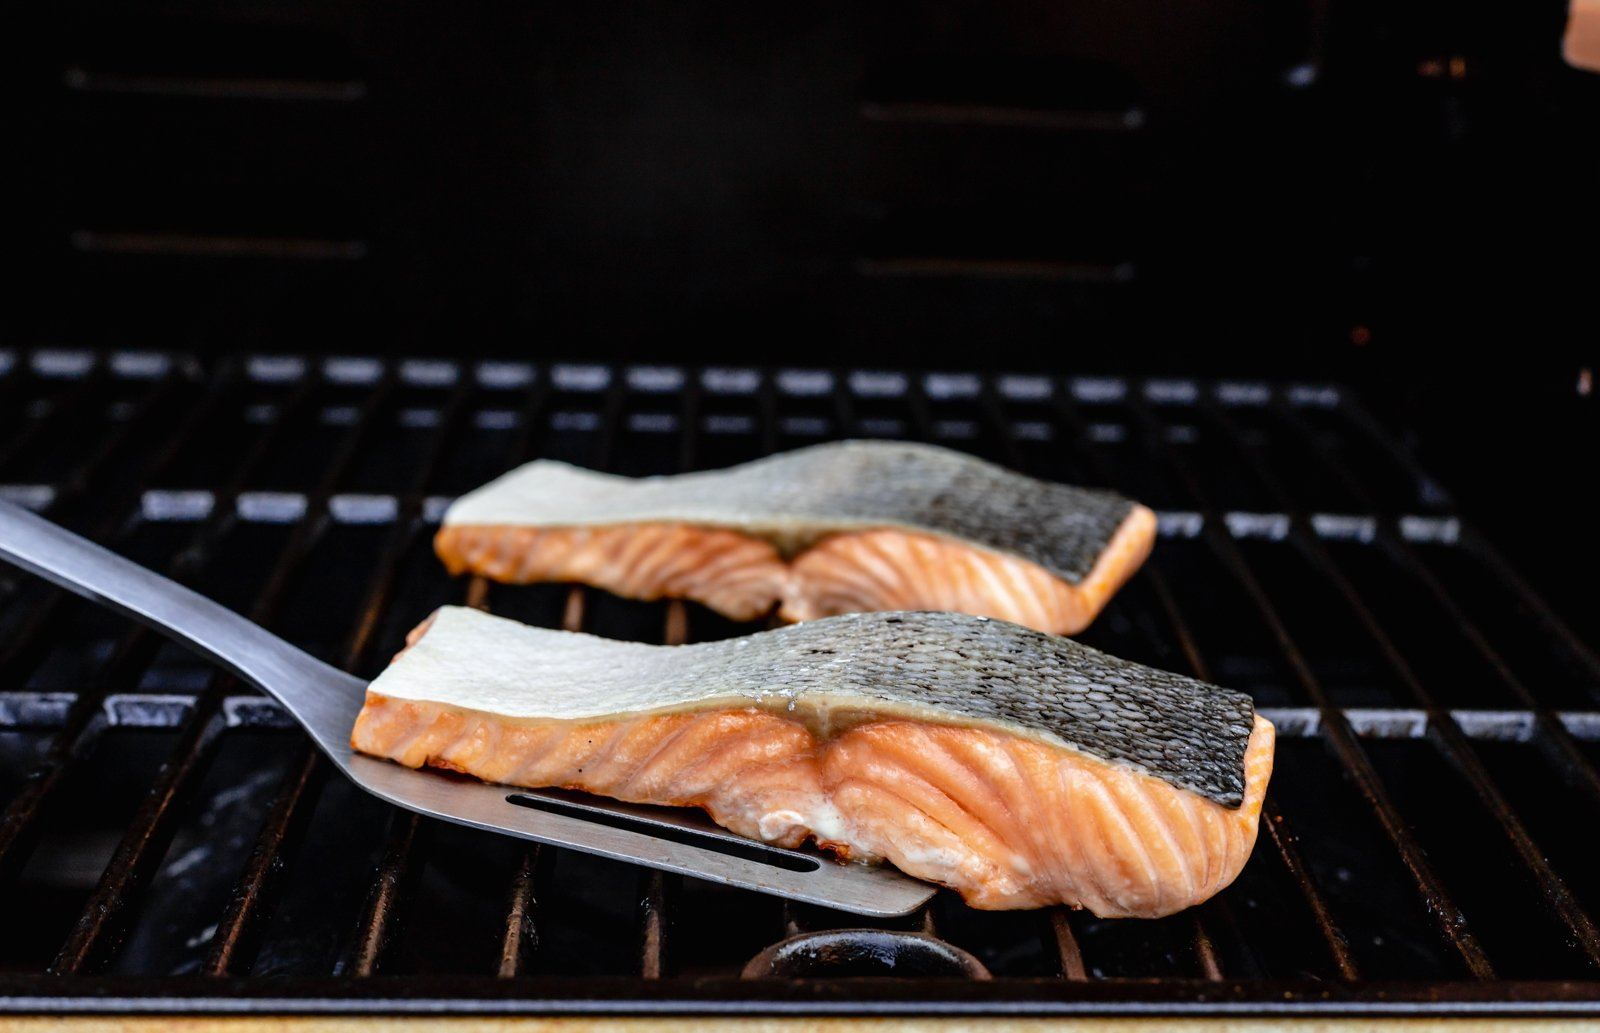 two pieces of salmon on a grill with a spatula